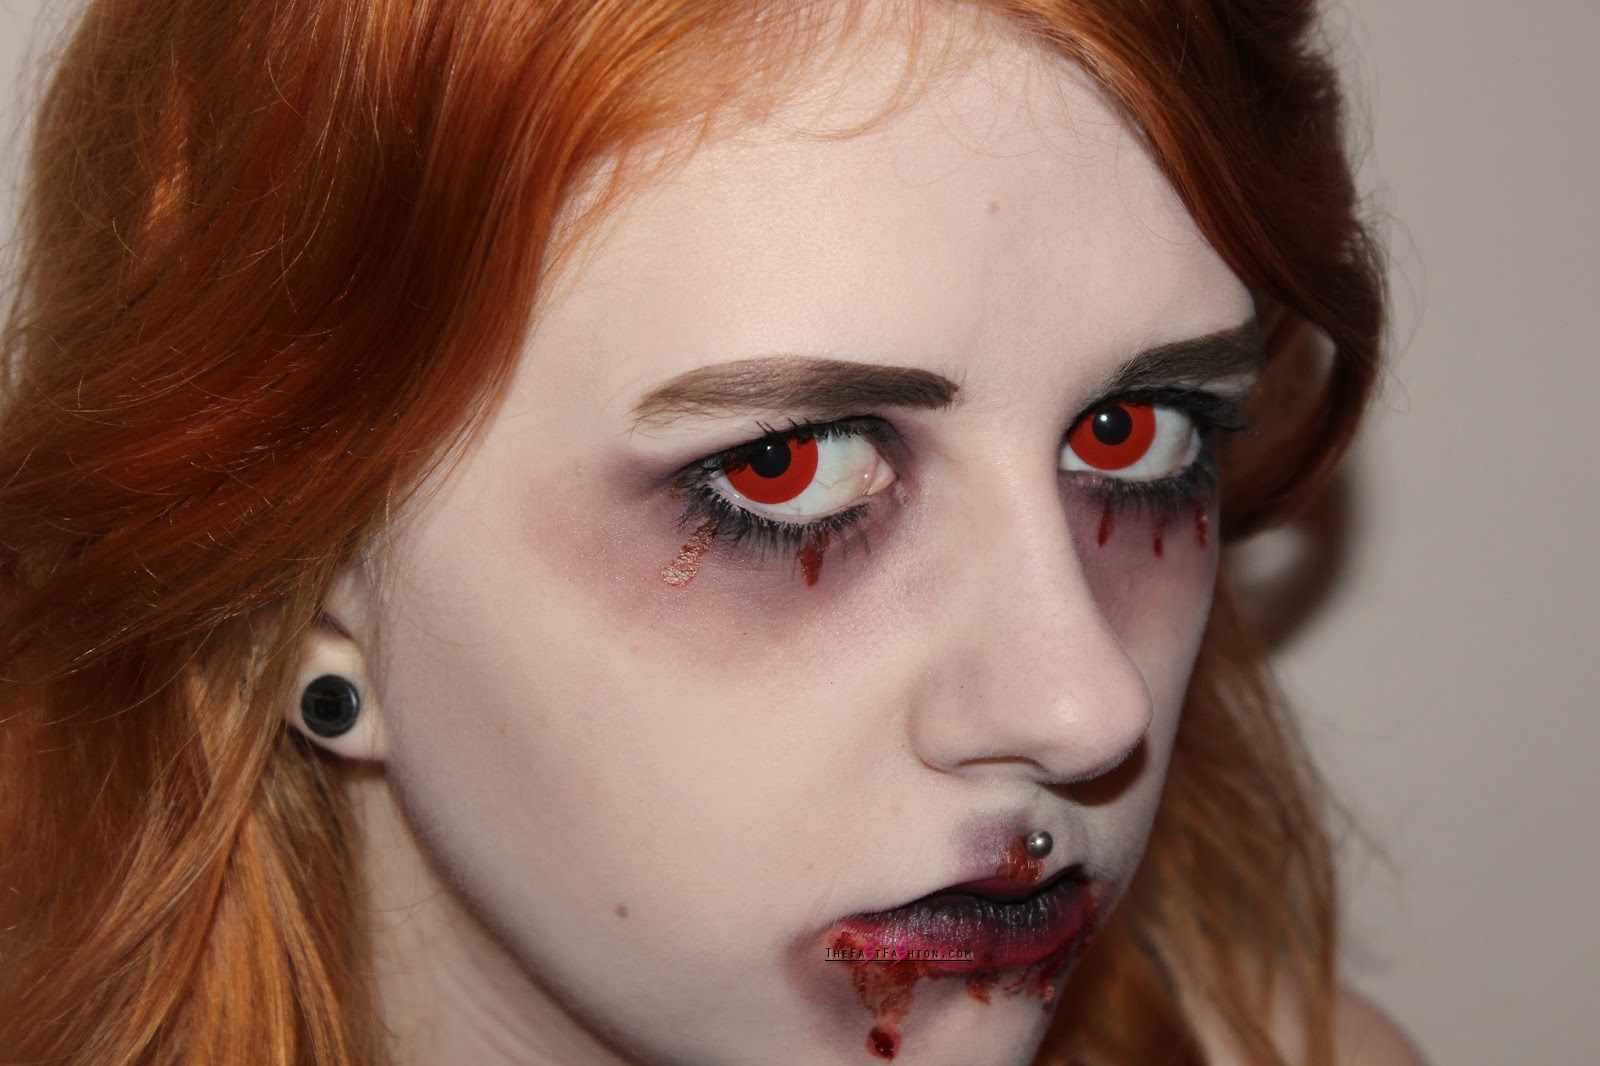 Red Contacts And Cat Eye Contact Lenses Best For Halloween